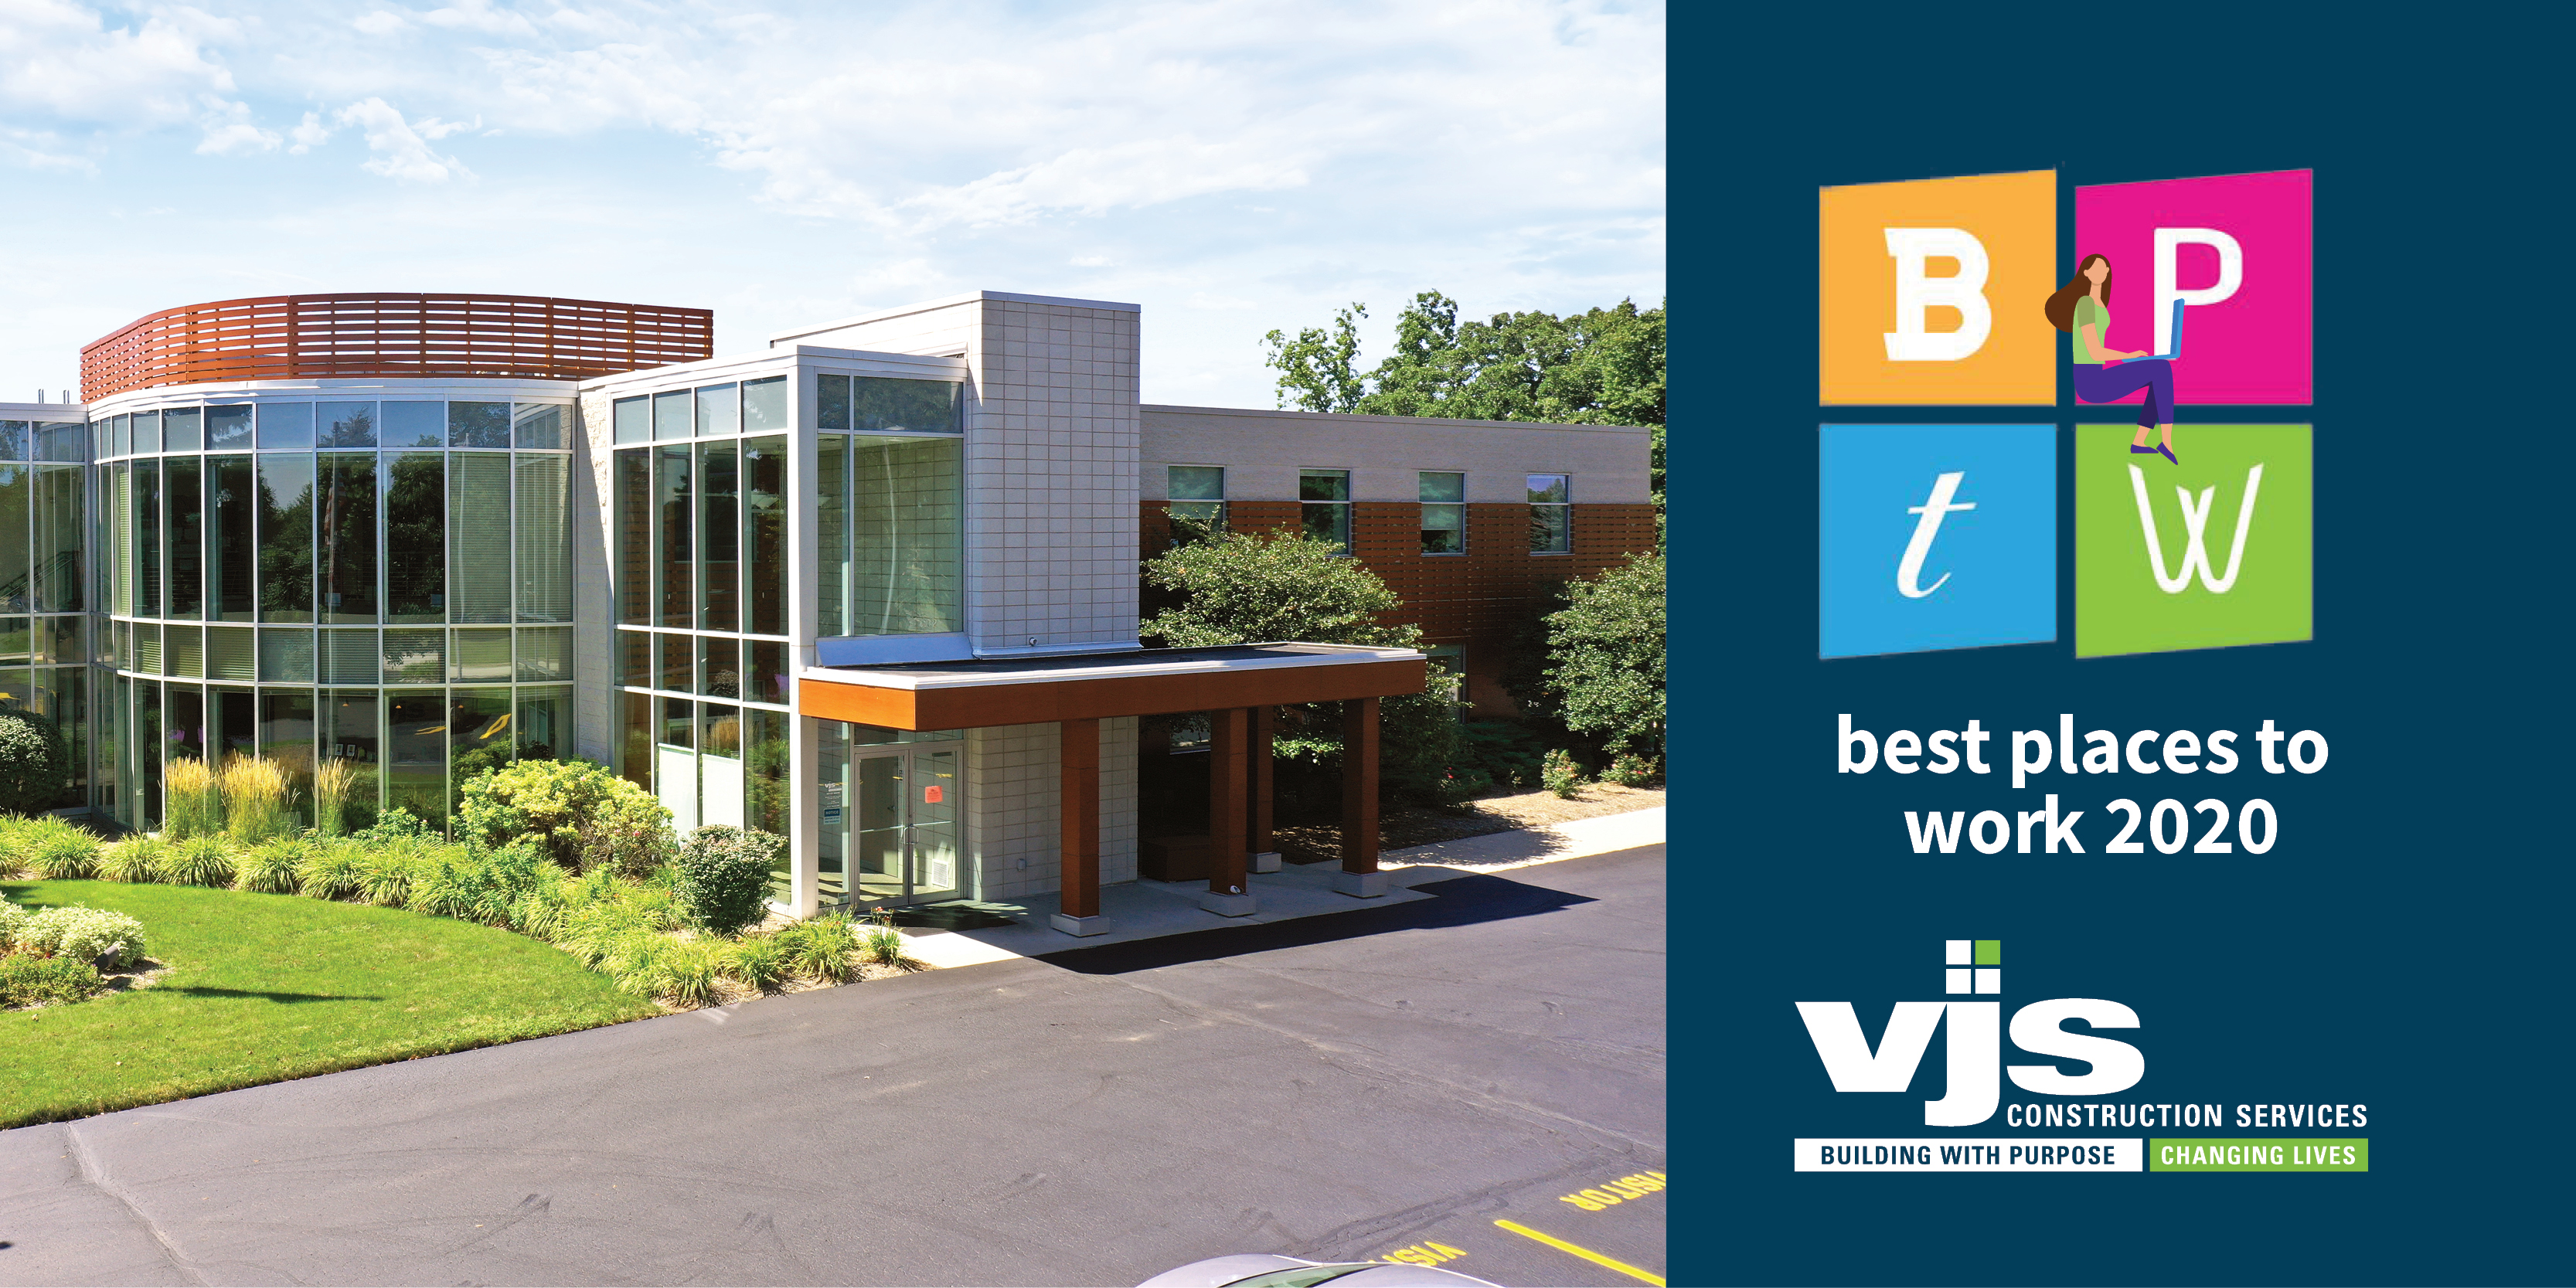 VJS Construction Services Receives 2020 Best Places to Work Award from the Milwaukee Business Journal 2